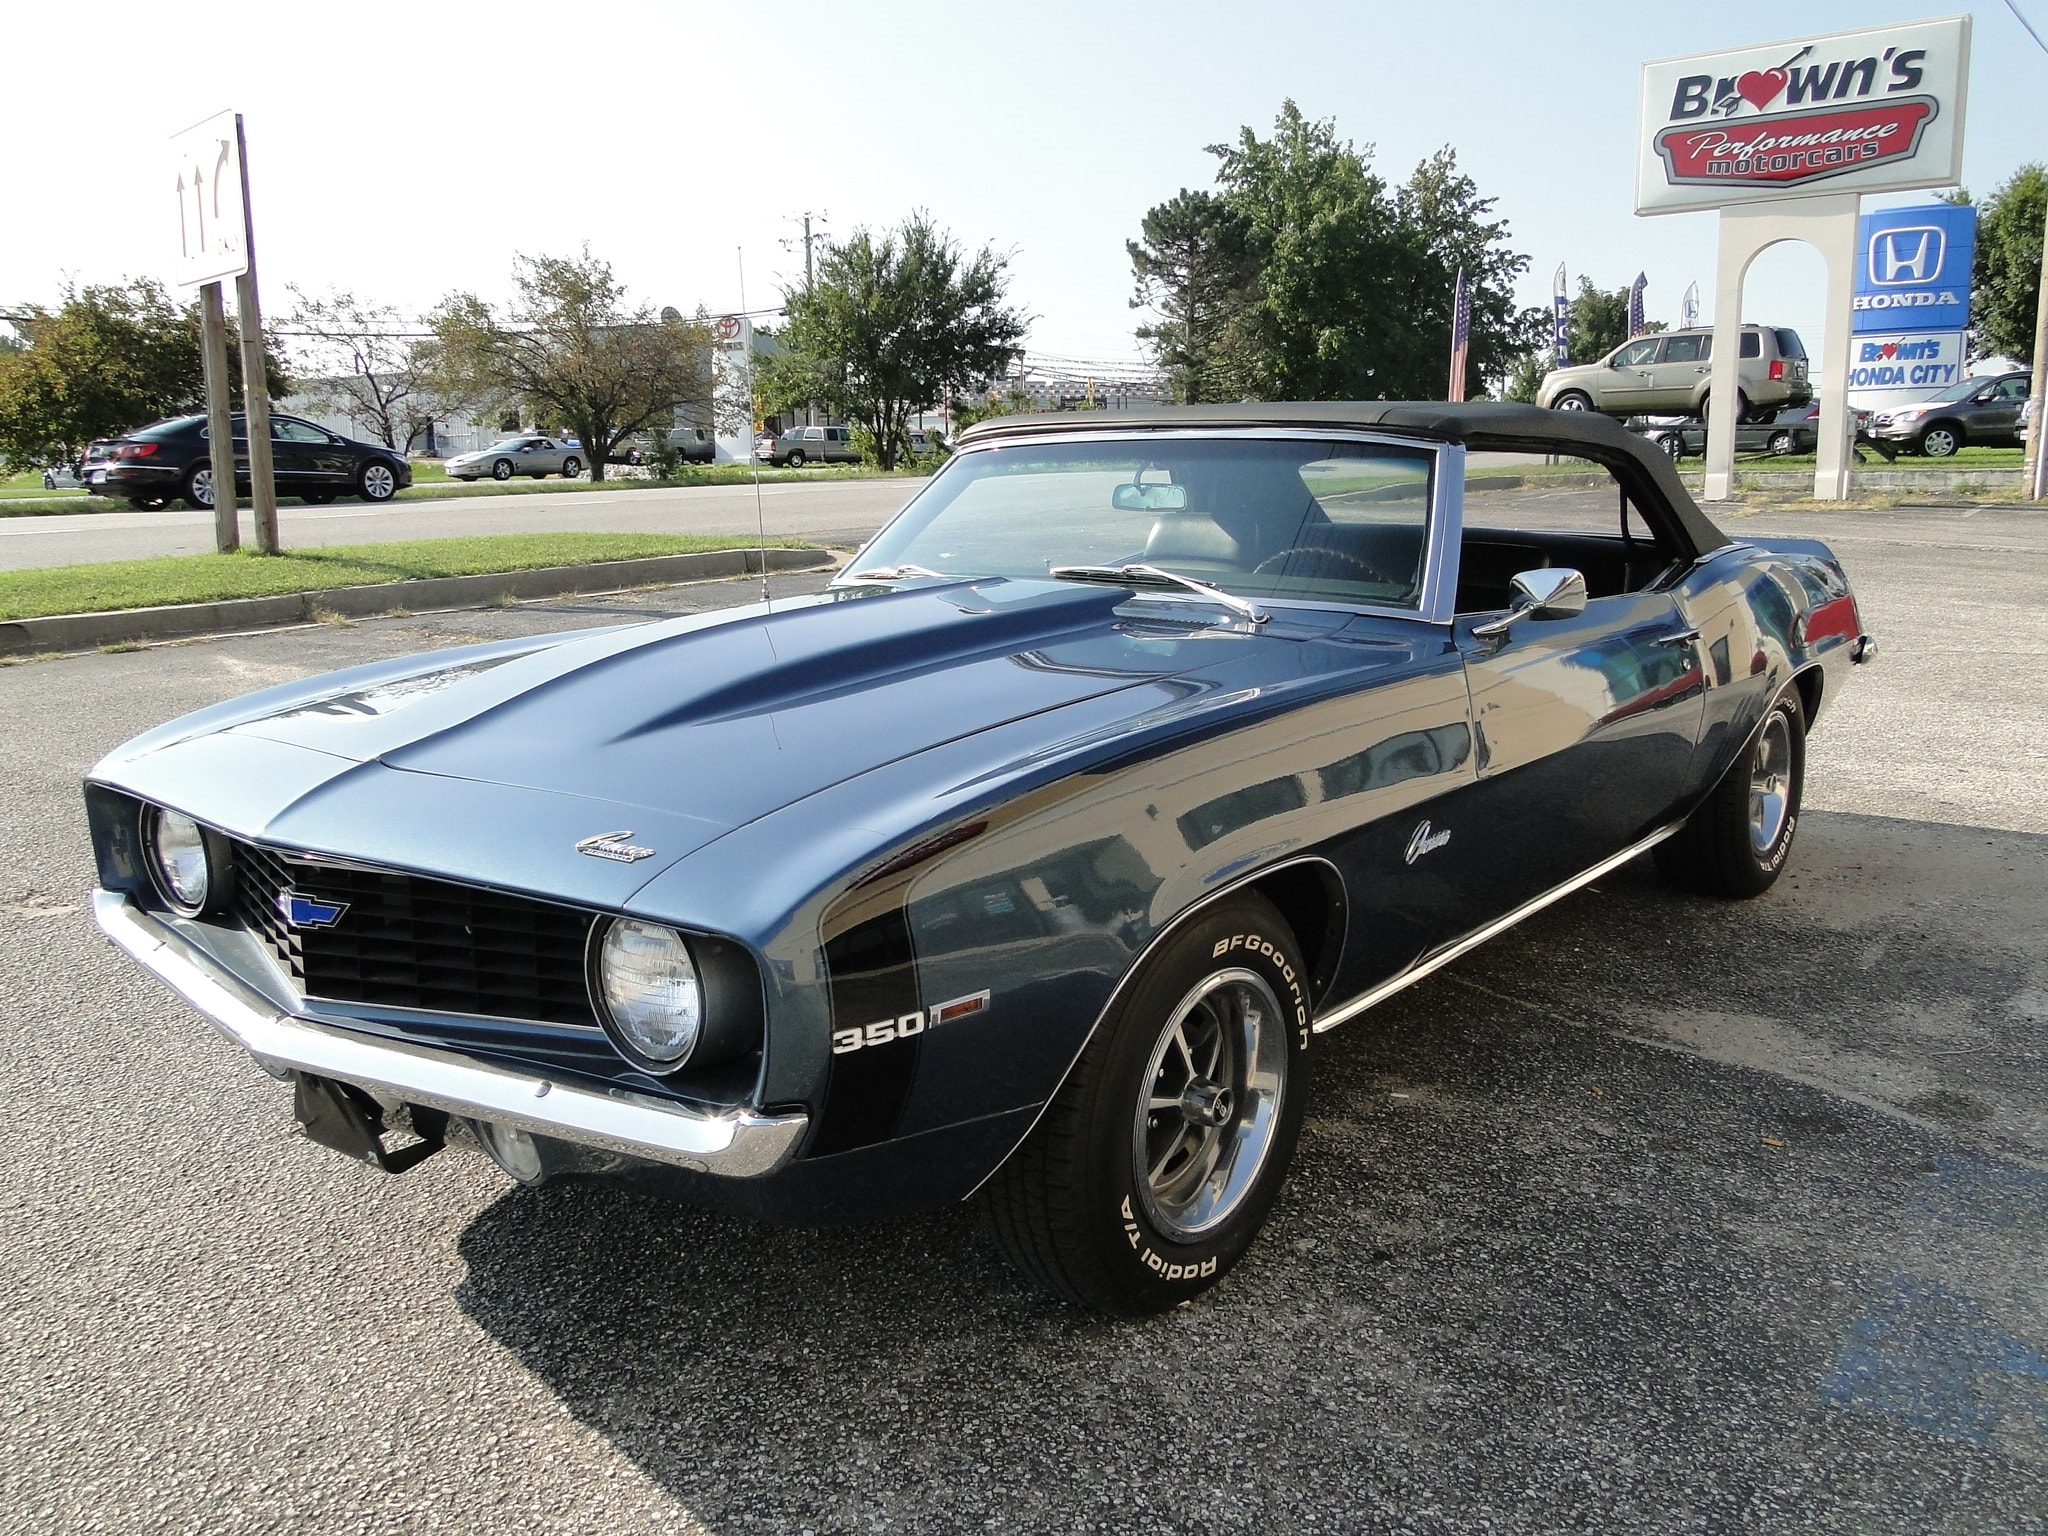 new 1969 chevrolet camaro convertible for sale glen burnie md r0329. Cars Review. Best American Auto & Cars Review